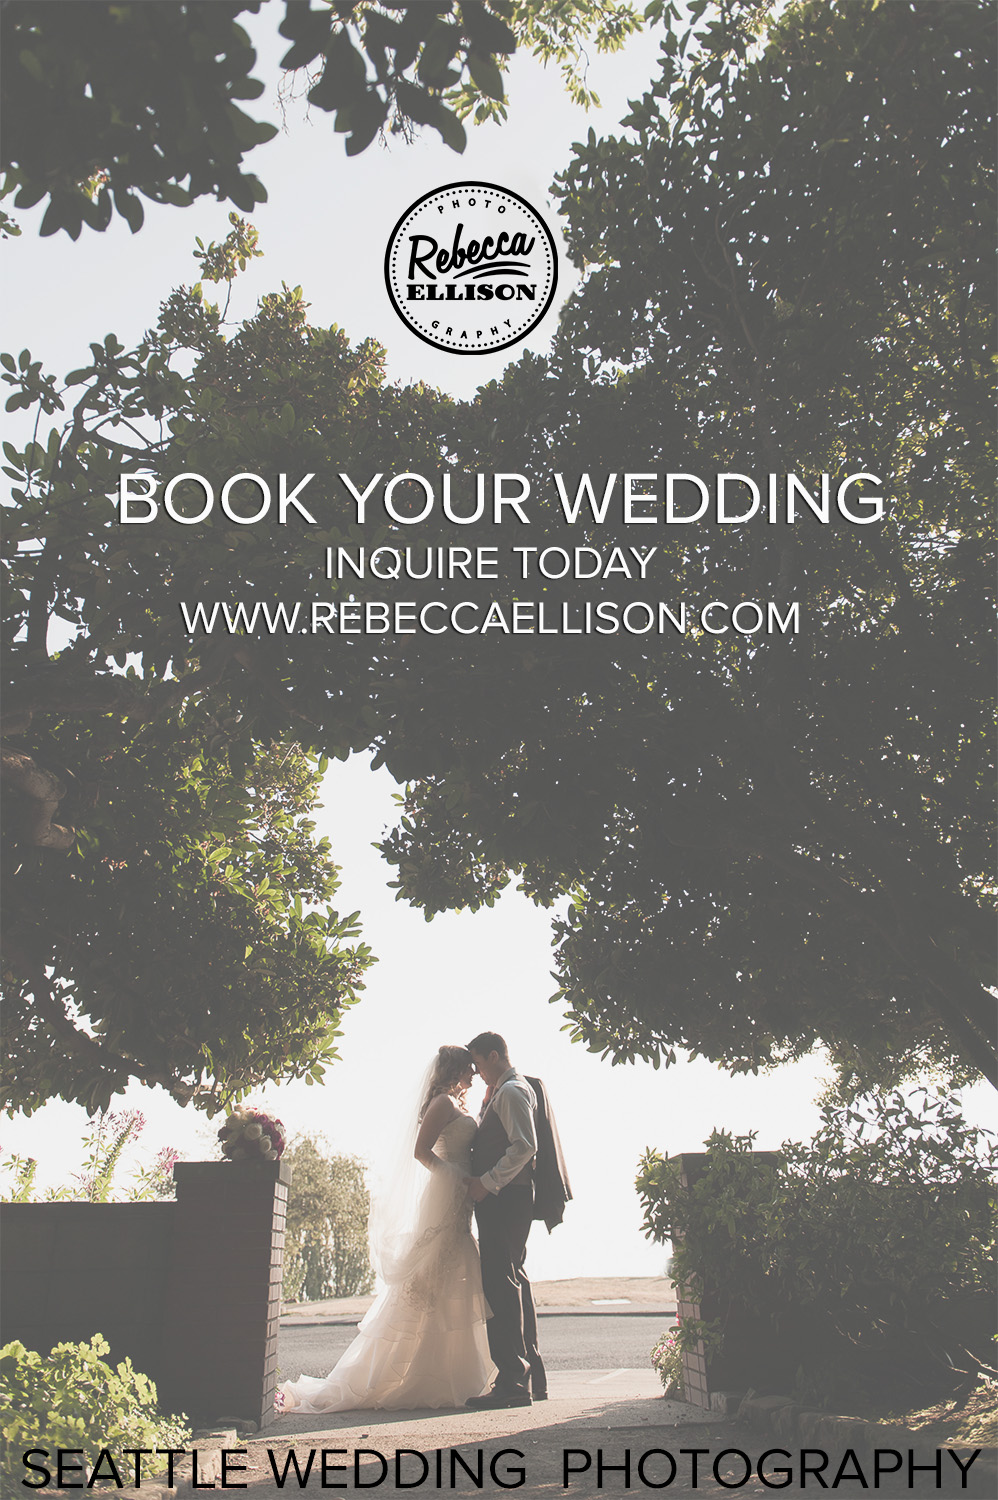 Wedding special for 2016 clients. Book Rebecca Ellison Photography for your Seattle wedding | www.rebeccaellison.com